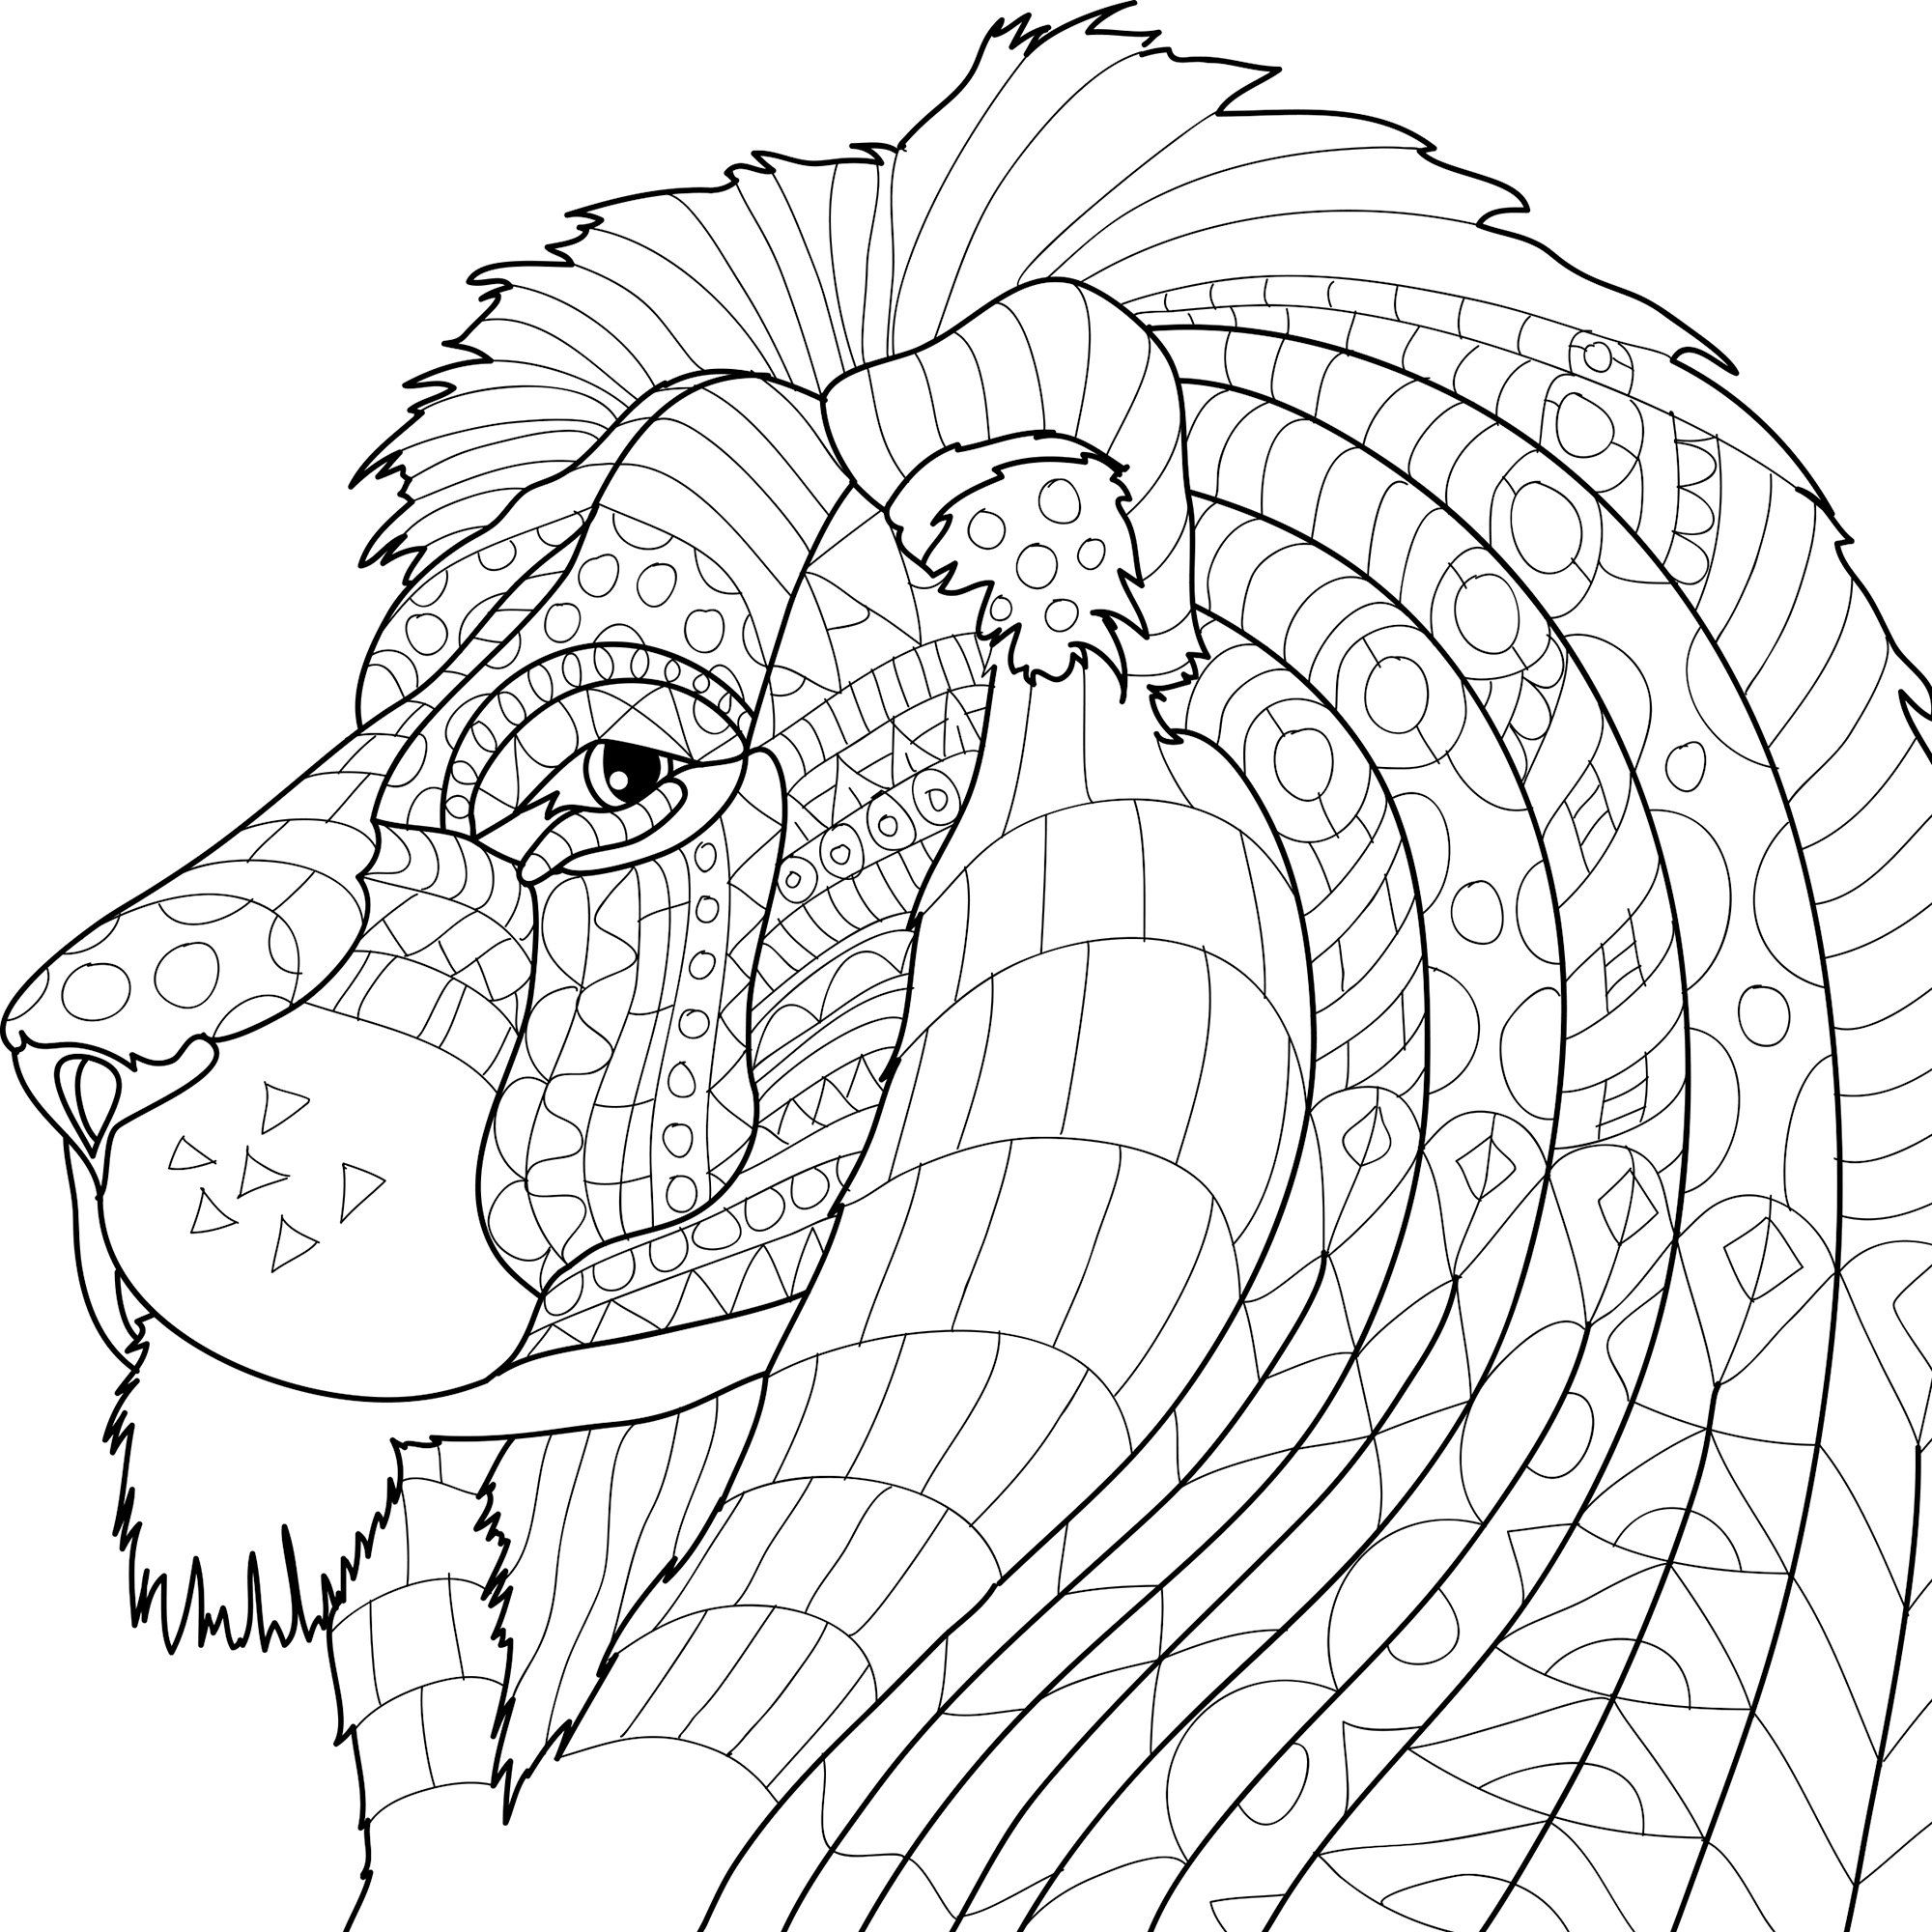 Animal Kingdom Adult Coloring Book With Color Pencils - Color With ... | 2000x2000